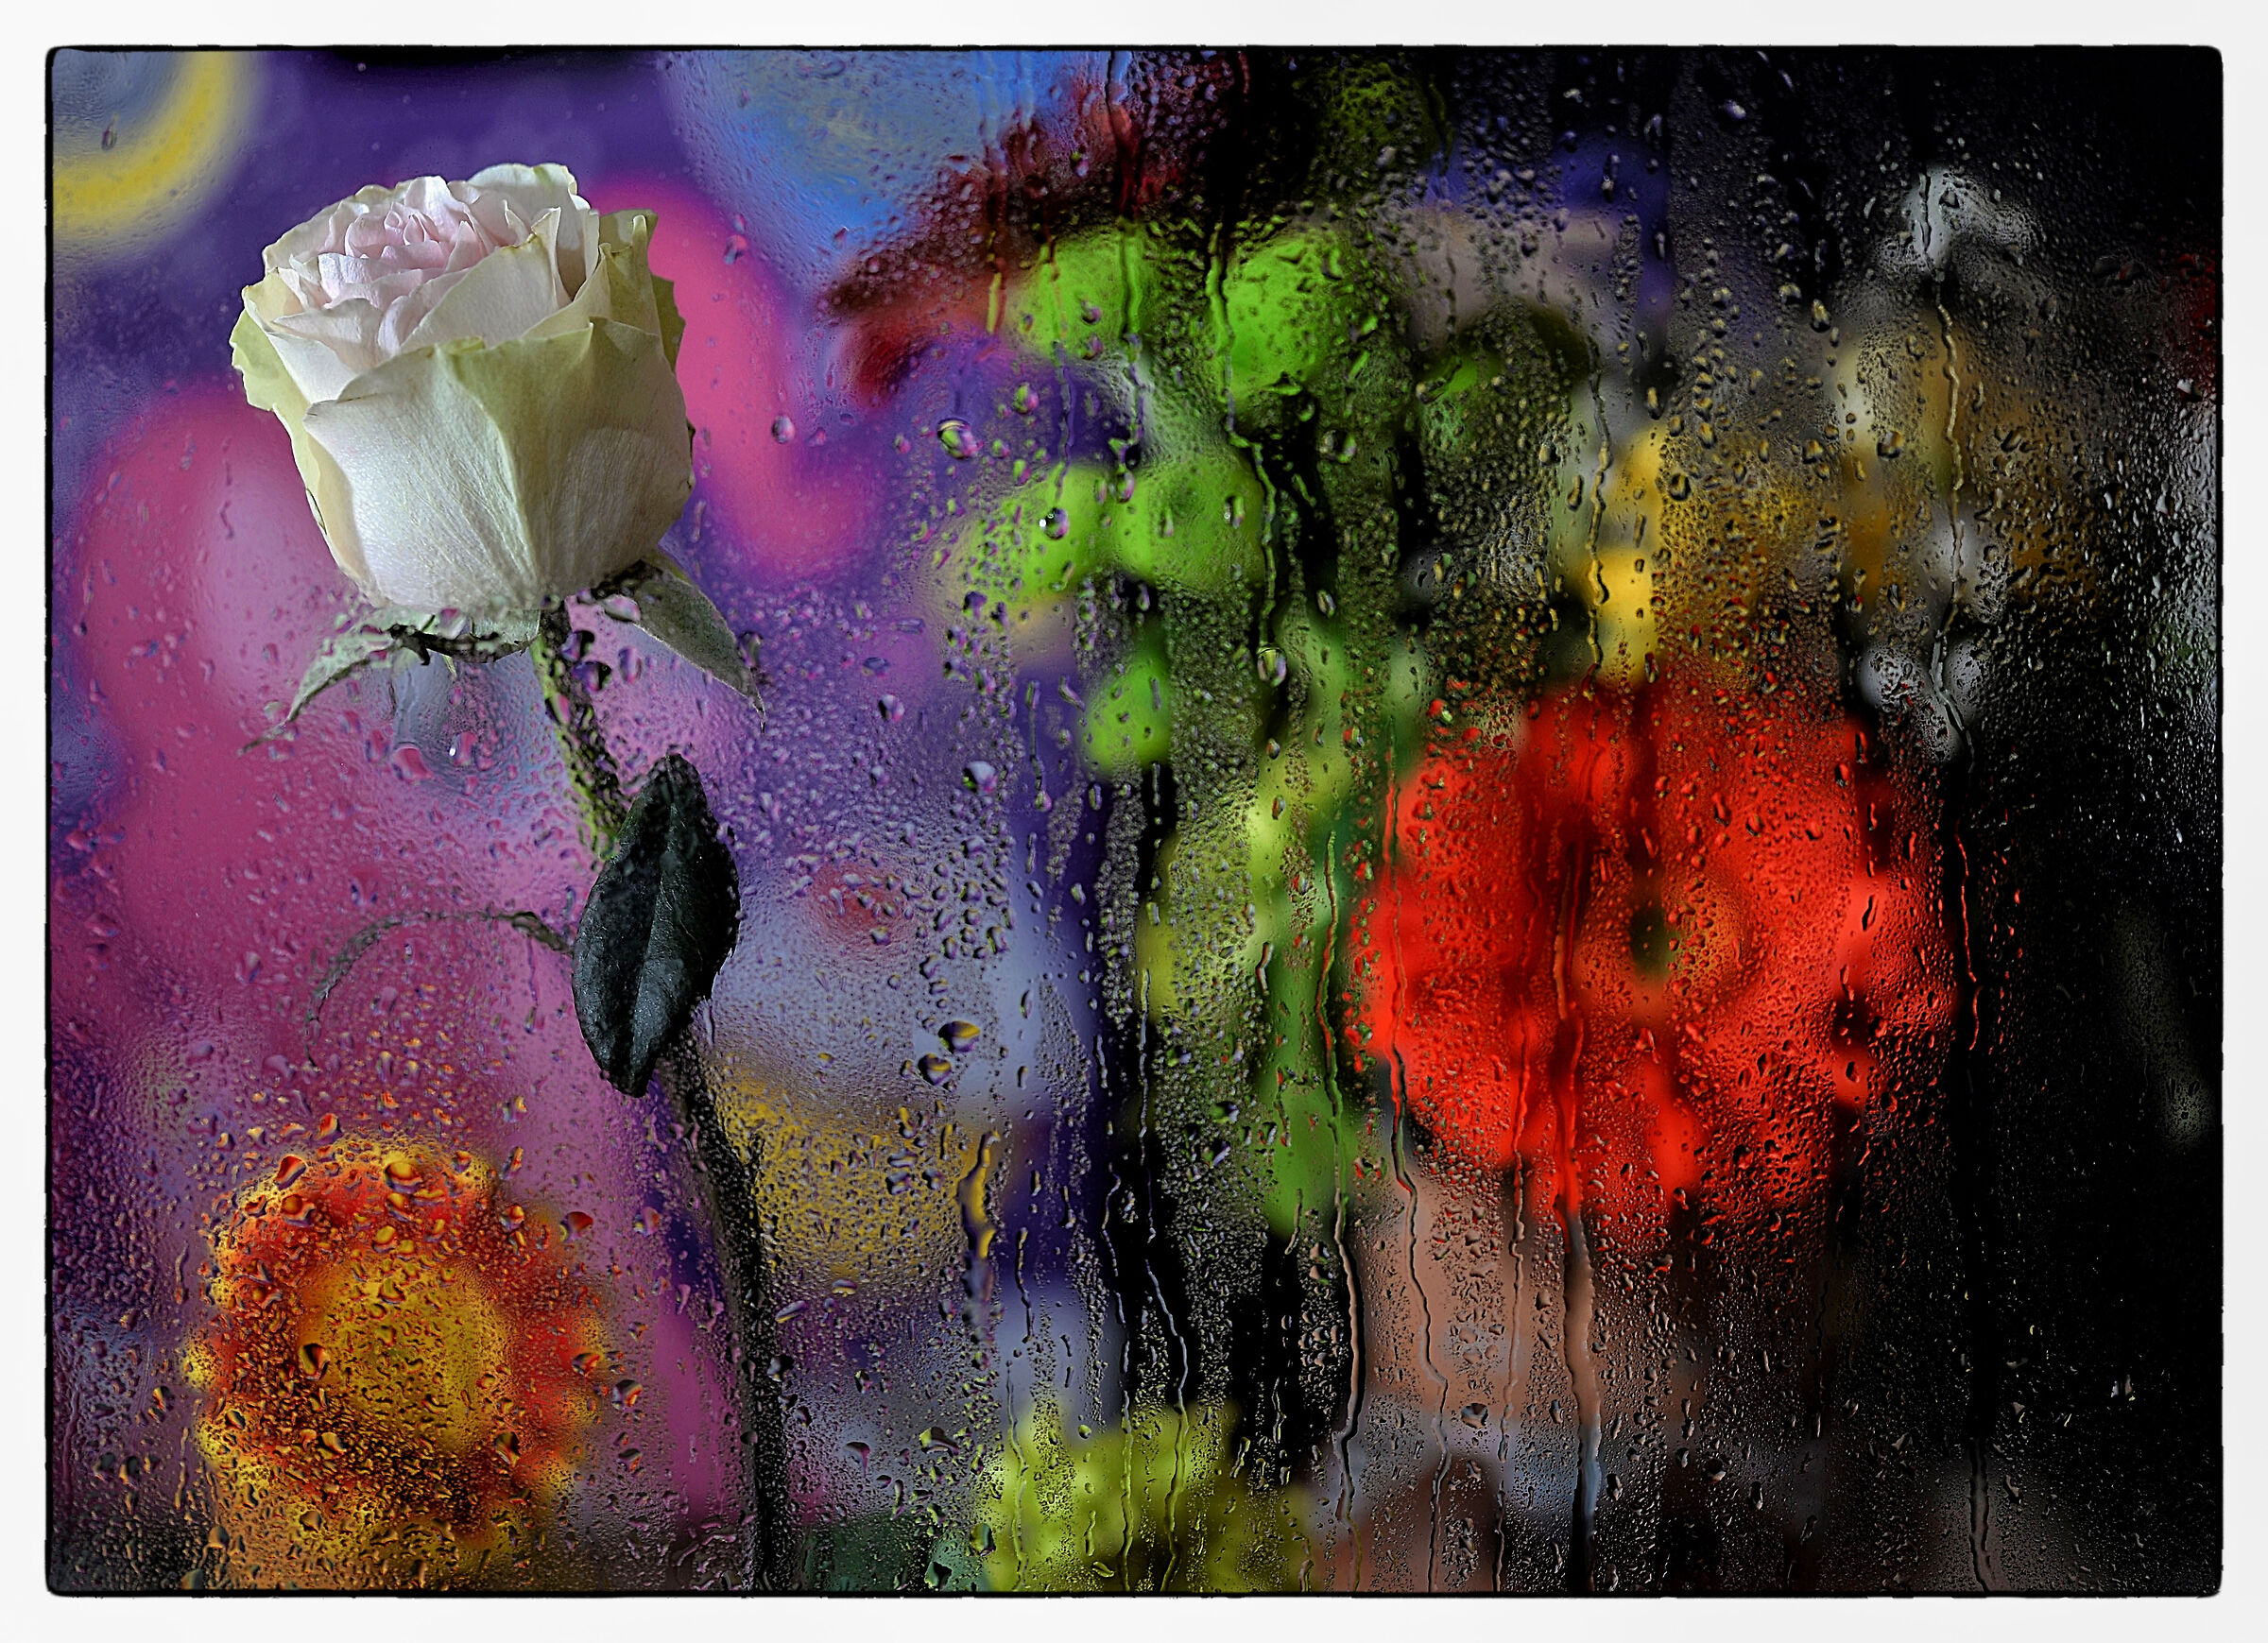 Wet Glass and flowers...